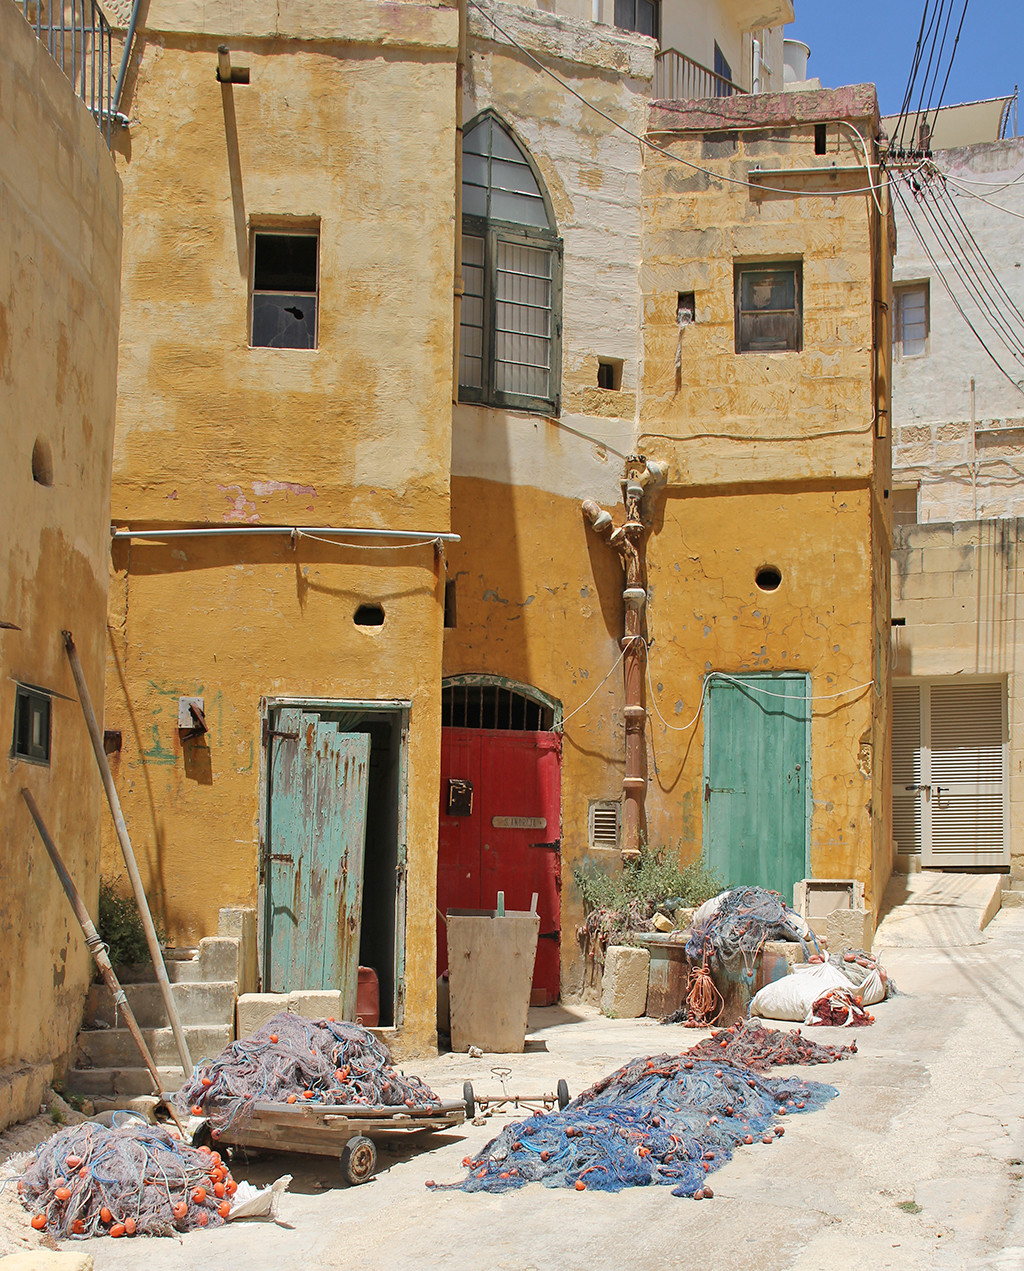 one week in gozo - postcards from malta - streets of gozo